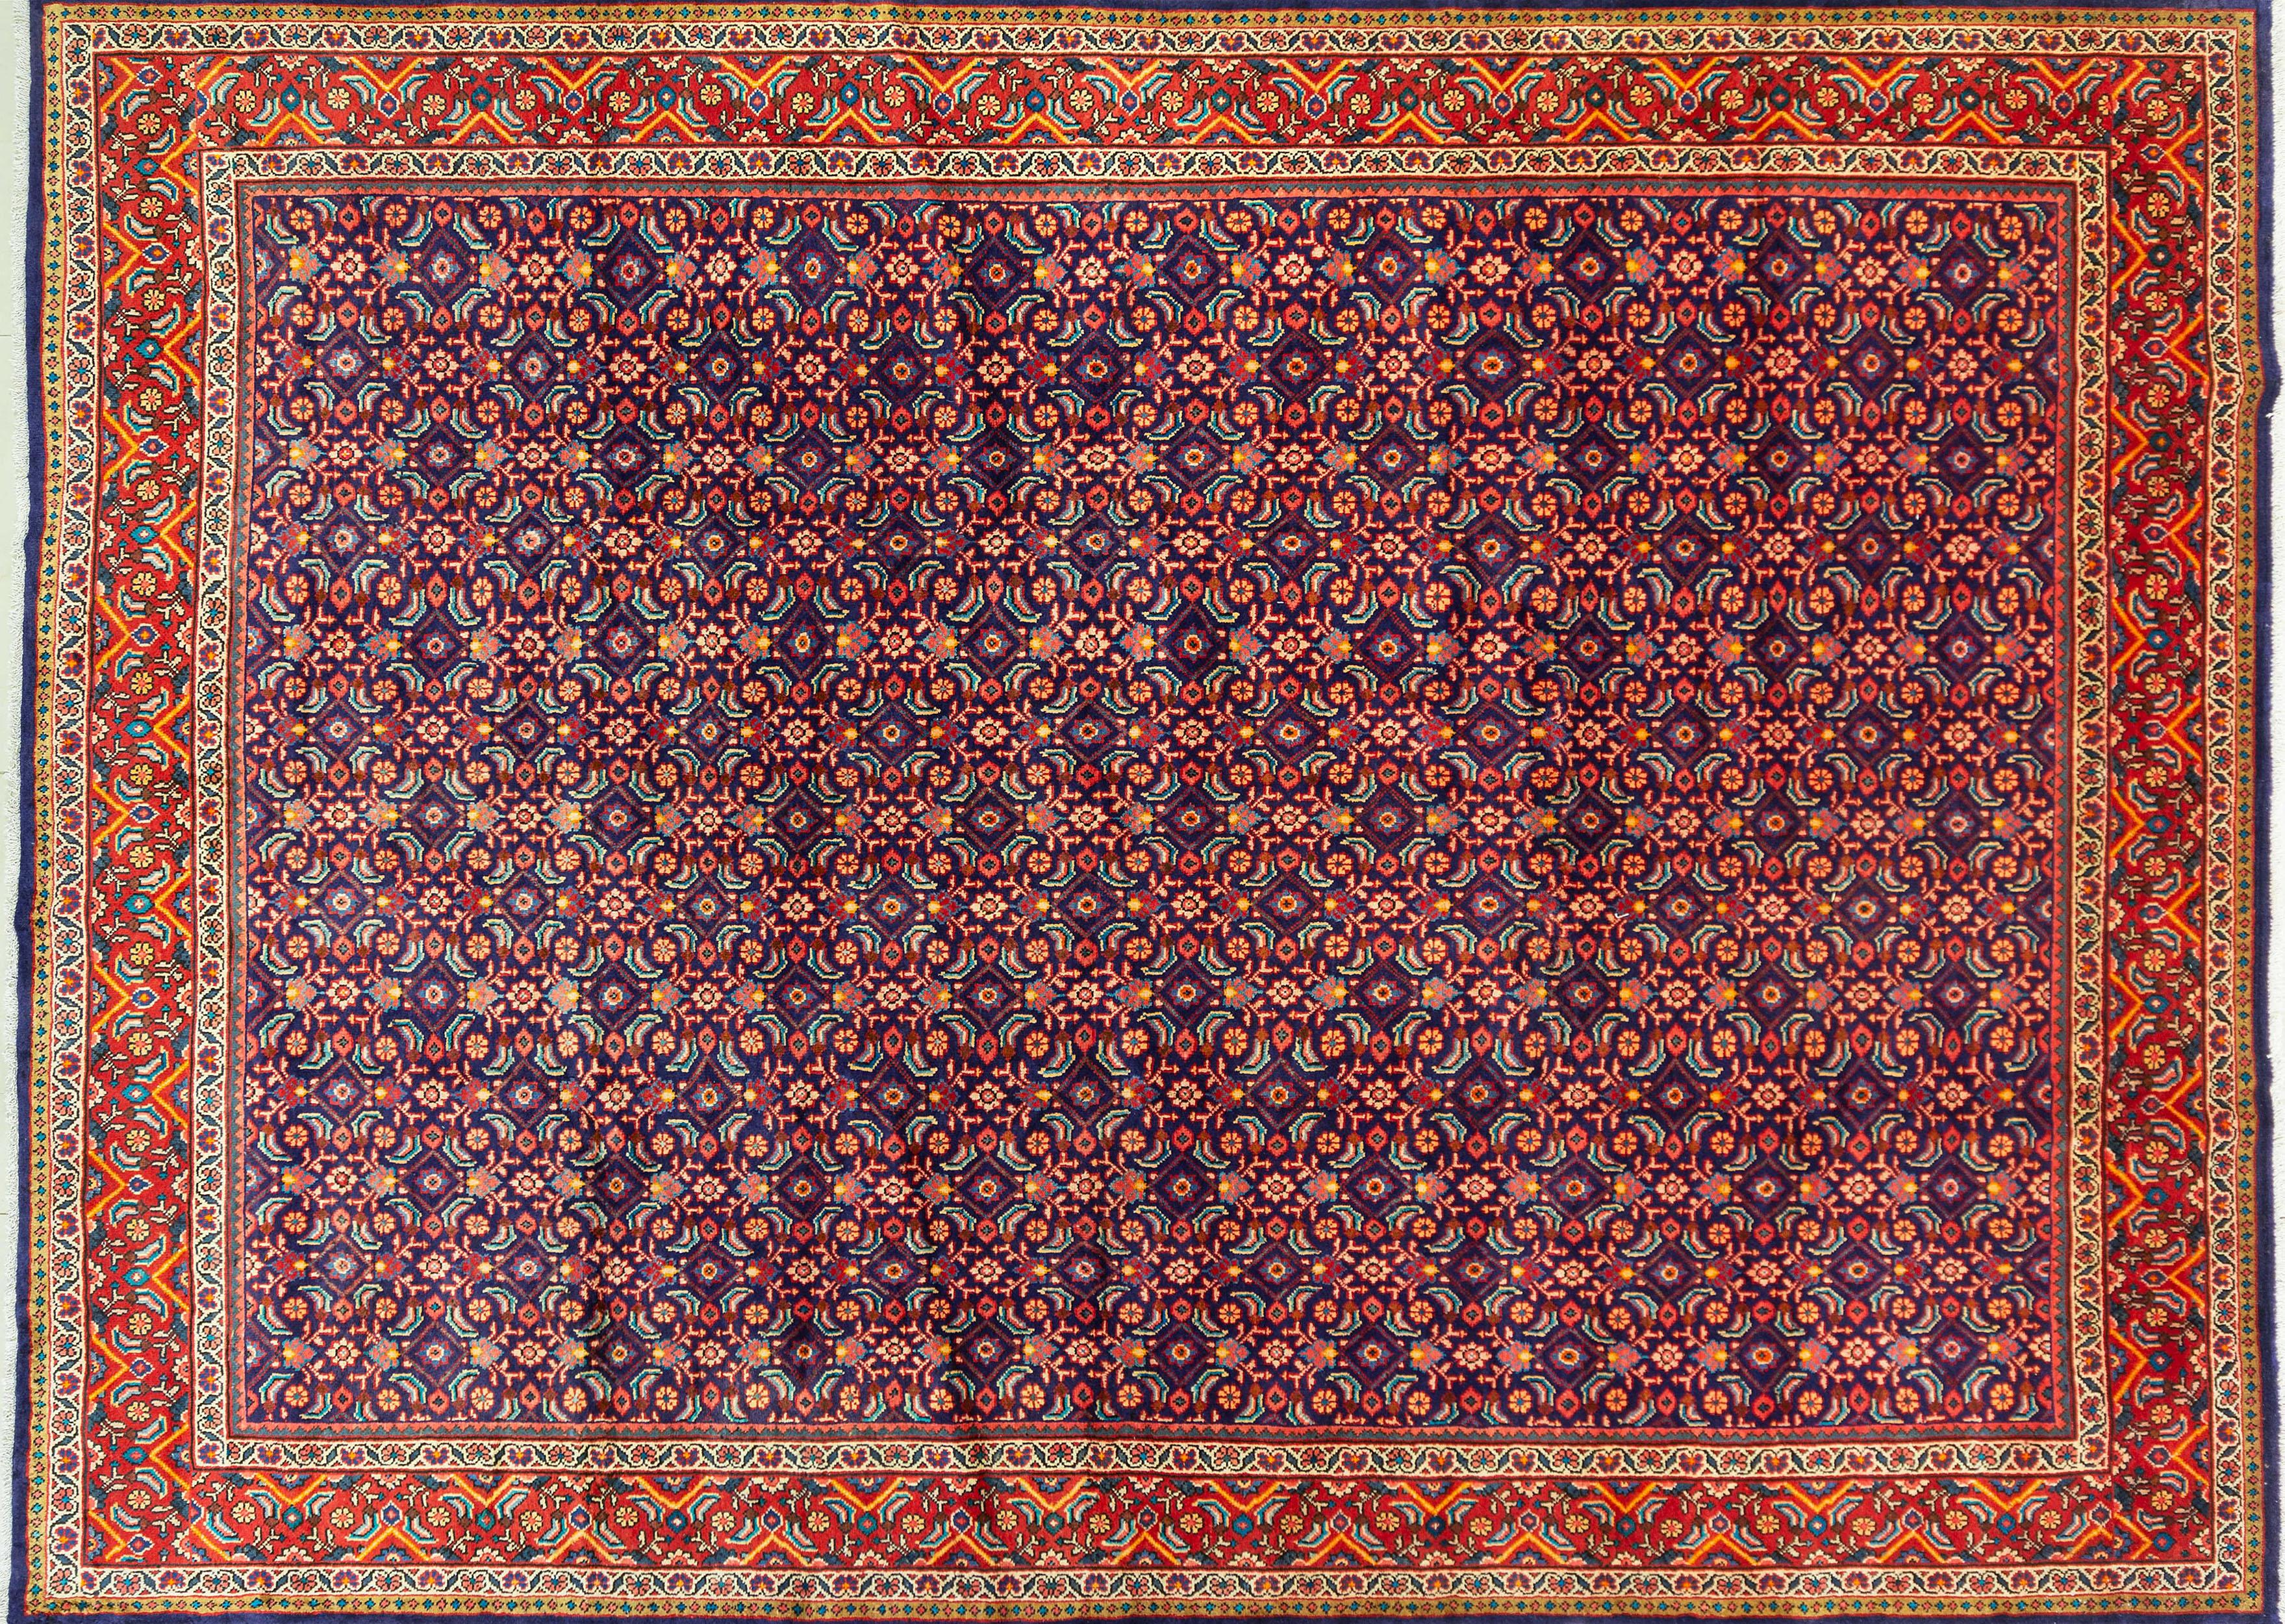 A Persian Hand Knotted Mahal Carpet, 415 x 300